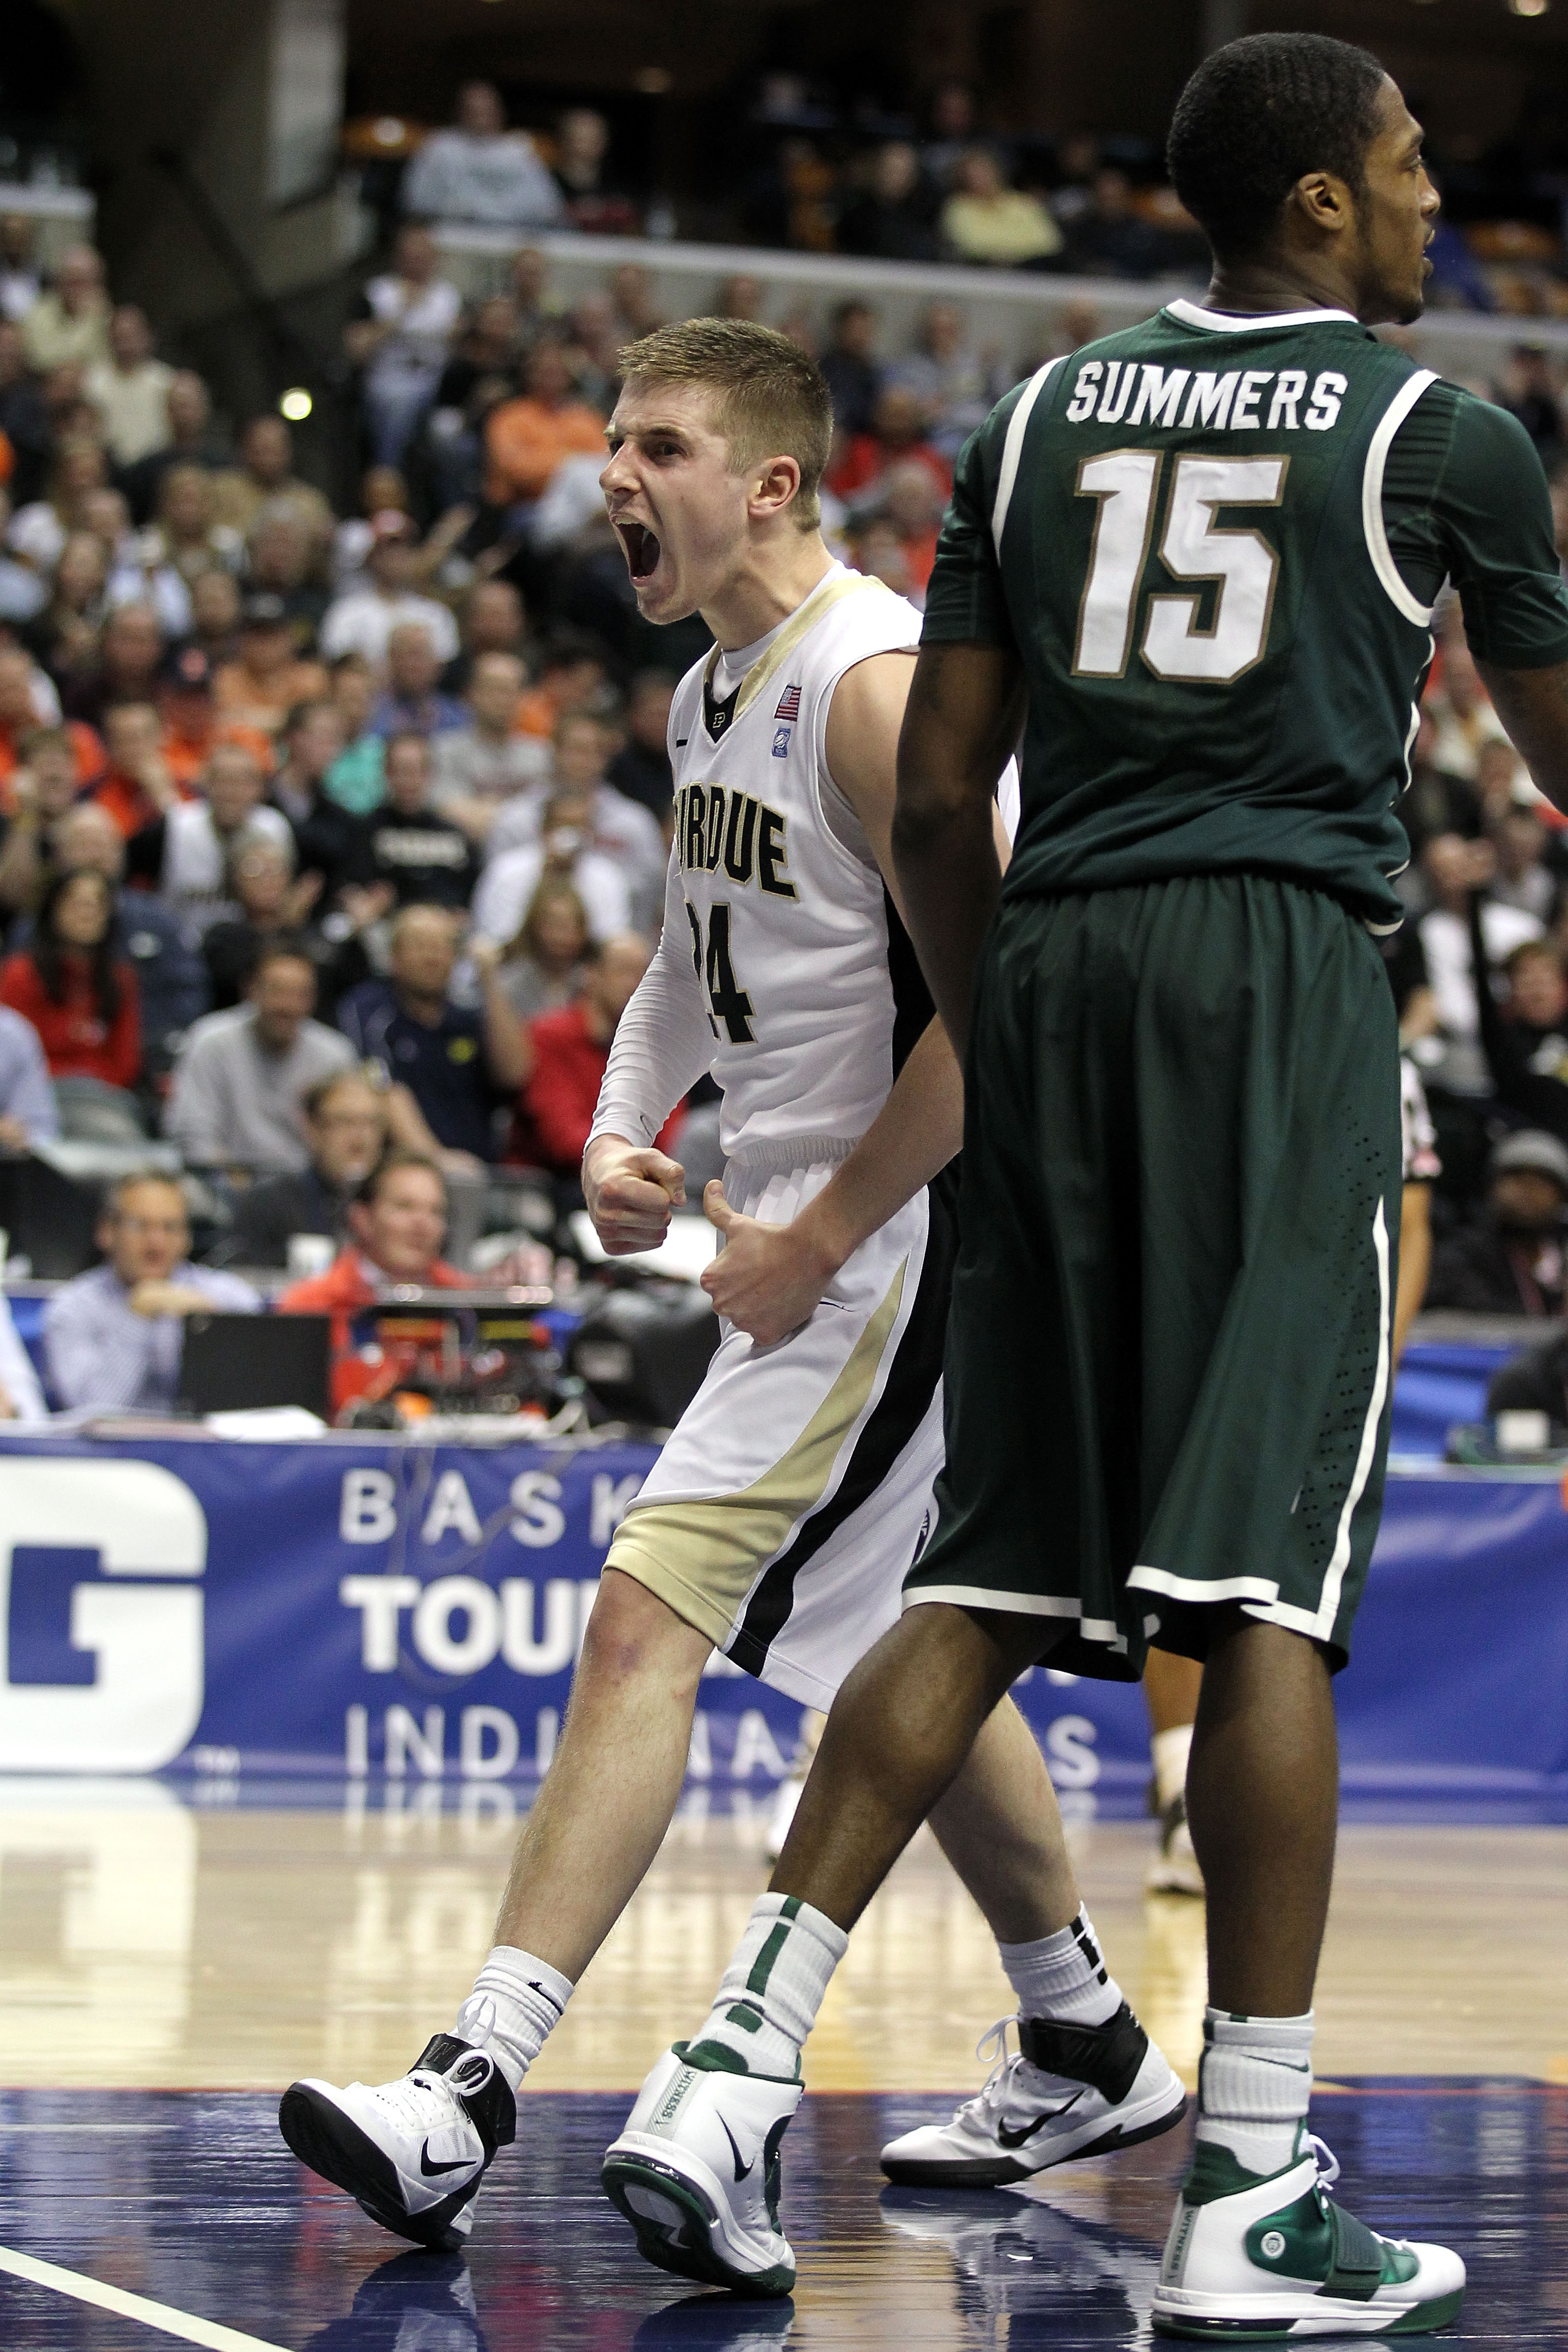 INDIANAPOLIS, IN - MARCH 11:  Ryne Smith #24 of the Purdue Boilermakers reacts against Durrell Summers #15 of the Michigan State Spartans during the quarterfinals of the 2011 Big Ten Men's Basketball Tournament at Conseco Fieldhouse on March 11, 2011 in I